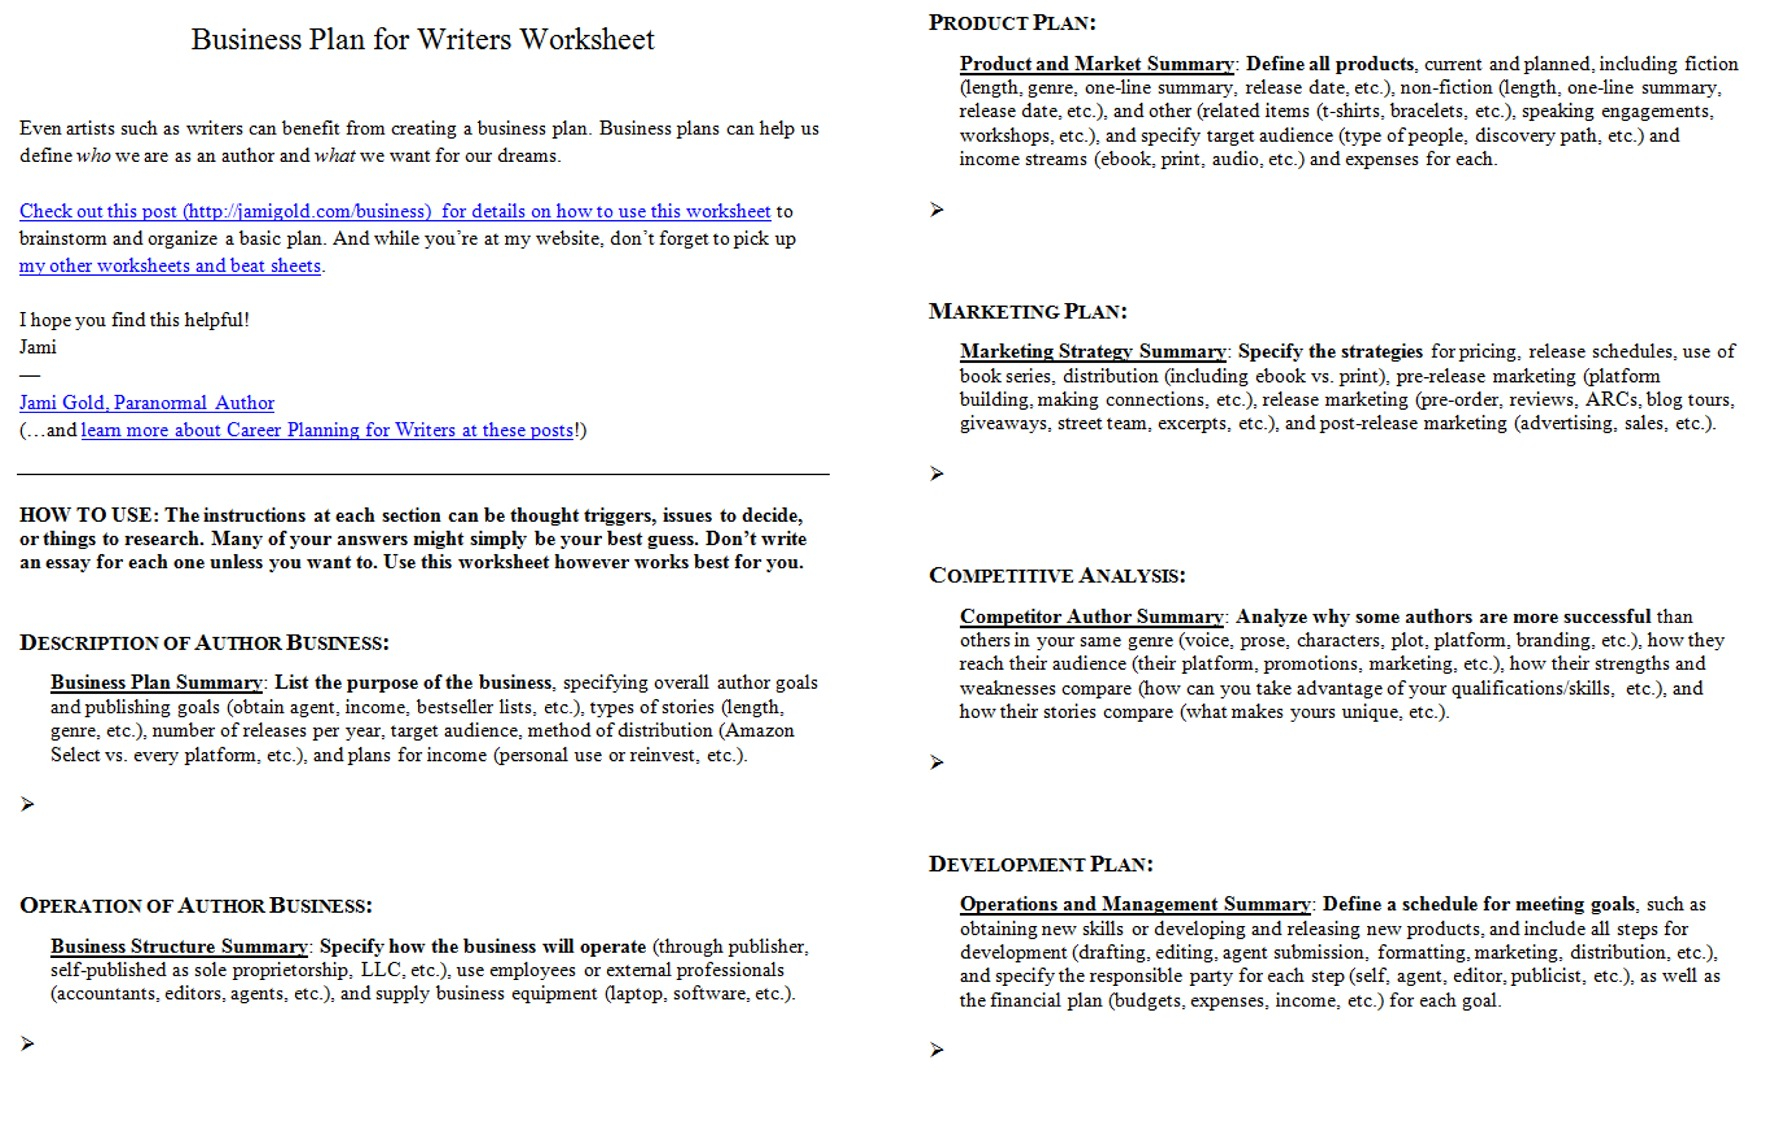 Weirdmailus  Marvellous Worksheets For Writers  Jami Gold Paranormal Author With Lovely Screen Shot Of Both Pages Of The Business Plan For Writers Worksheet With Attractive Algebra Distributive Property Worksheets Also Phonogram Worksheets In Addition My Promotion Point Worksheet And Fry Sight Word Worksheets As Well As Vertical Addition Worksheets Additionally Very Hungry Caterpillar Worksheets From Jamigoldcom With Weirdmailus  Lovely Worksheets For Writers  Jami Gold Paranormal Author With Attractive Screen Shot Of Both Pages Of The Business Plan For Writers Worksheet And Marvellous Algebra Distributive Property Worksheets Also Phonogram Worksheets In Addition My Promotion Point Worksheet From Jamigoldcom